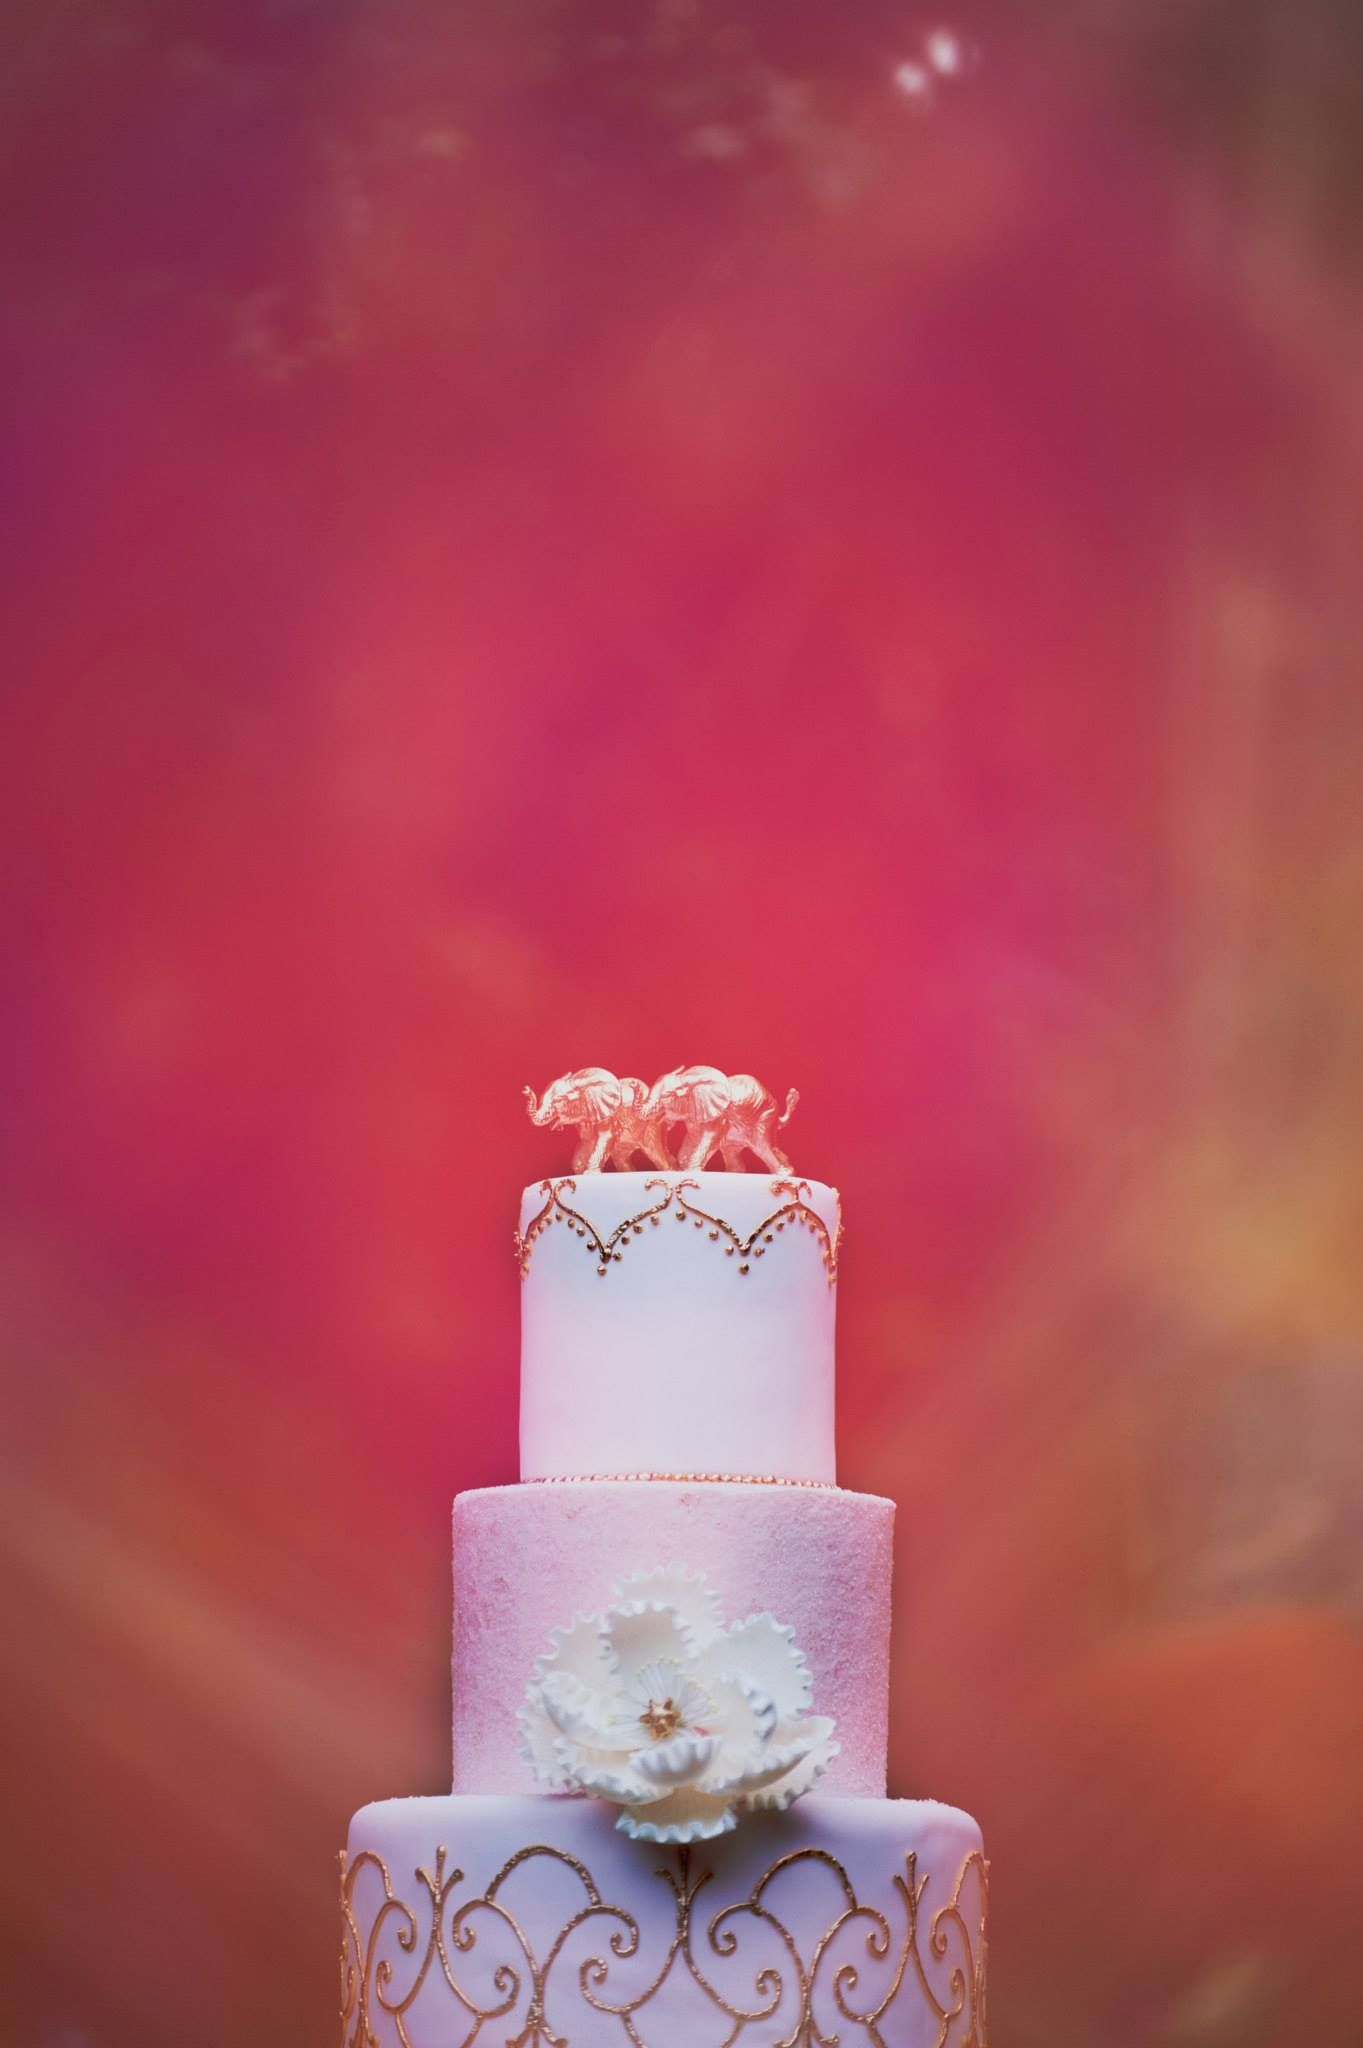 Colorful East Meets West Wedding Ideas | Met, Cake and Wedding cake